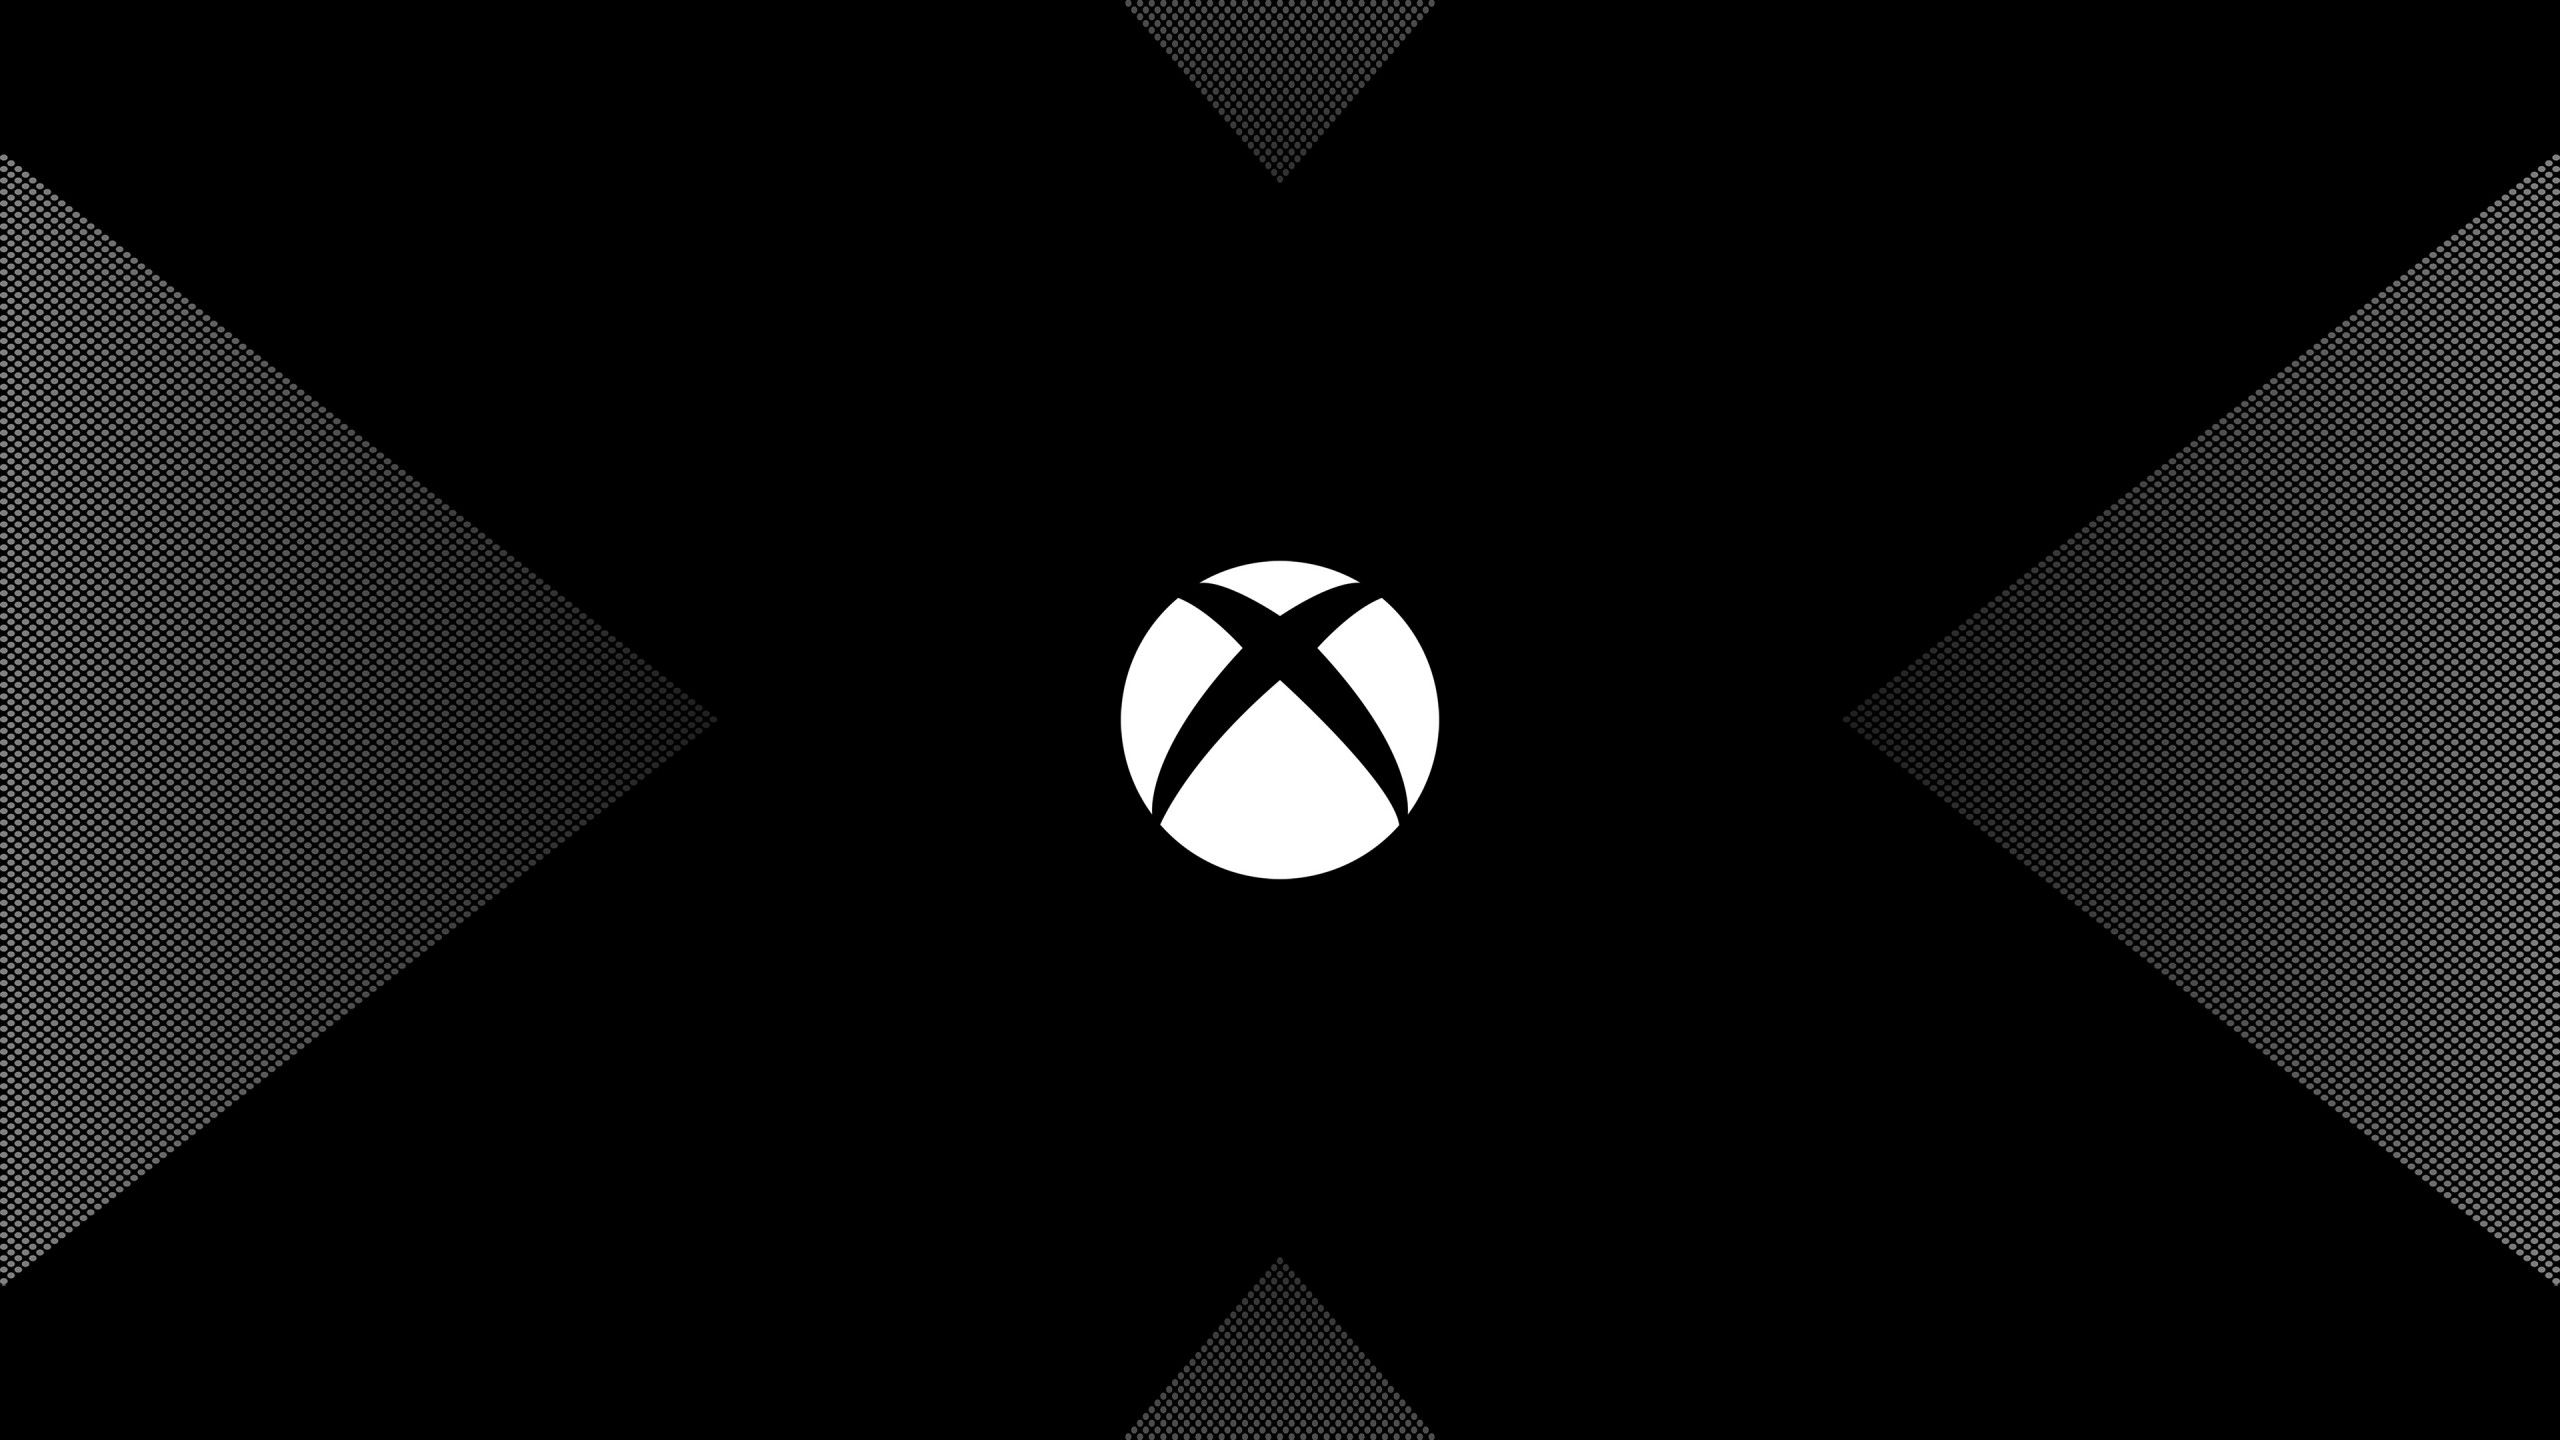 2560x1440 WALLPAPERS HD: Xbox One X